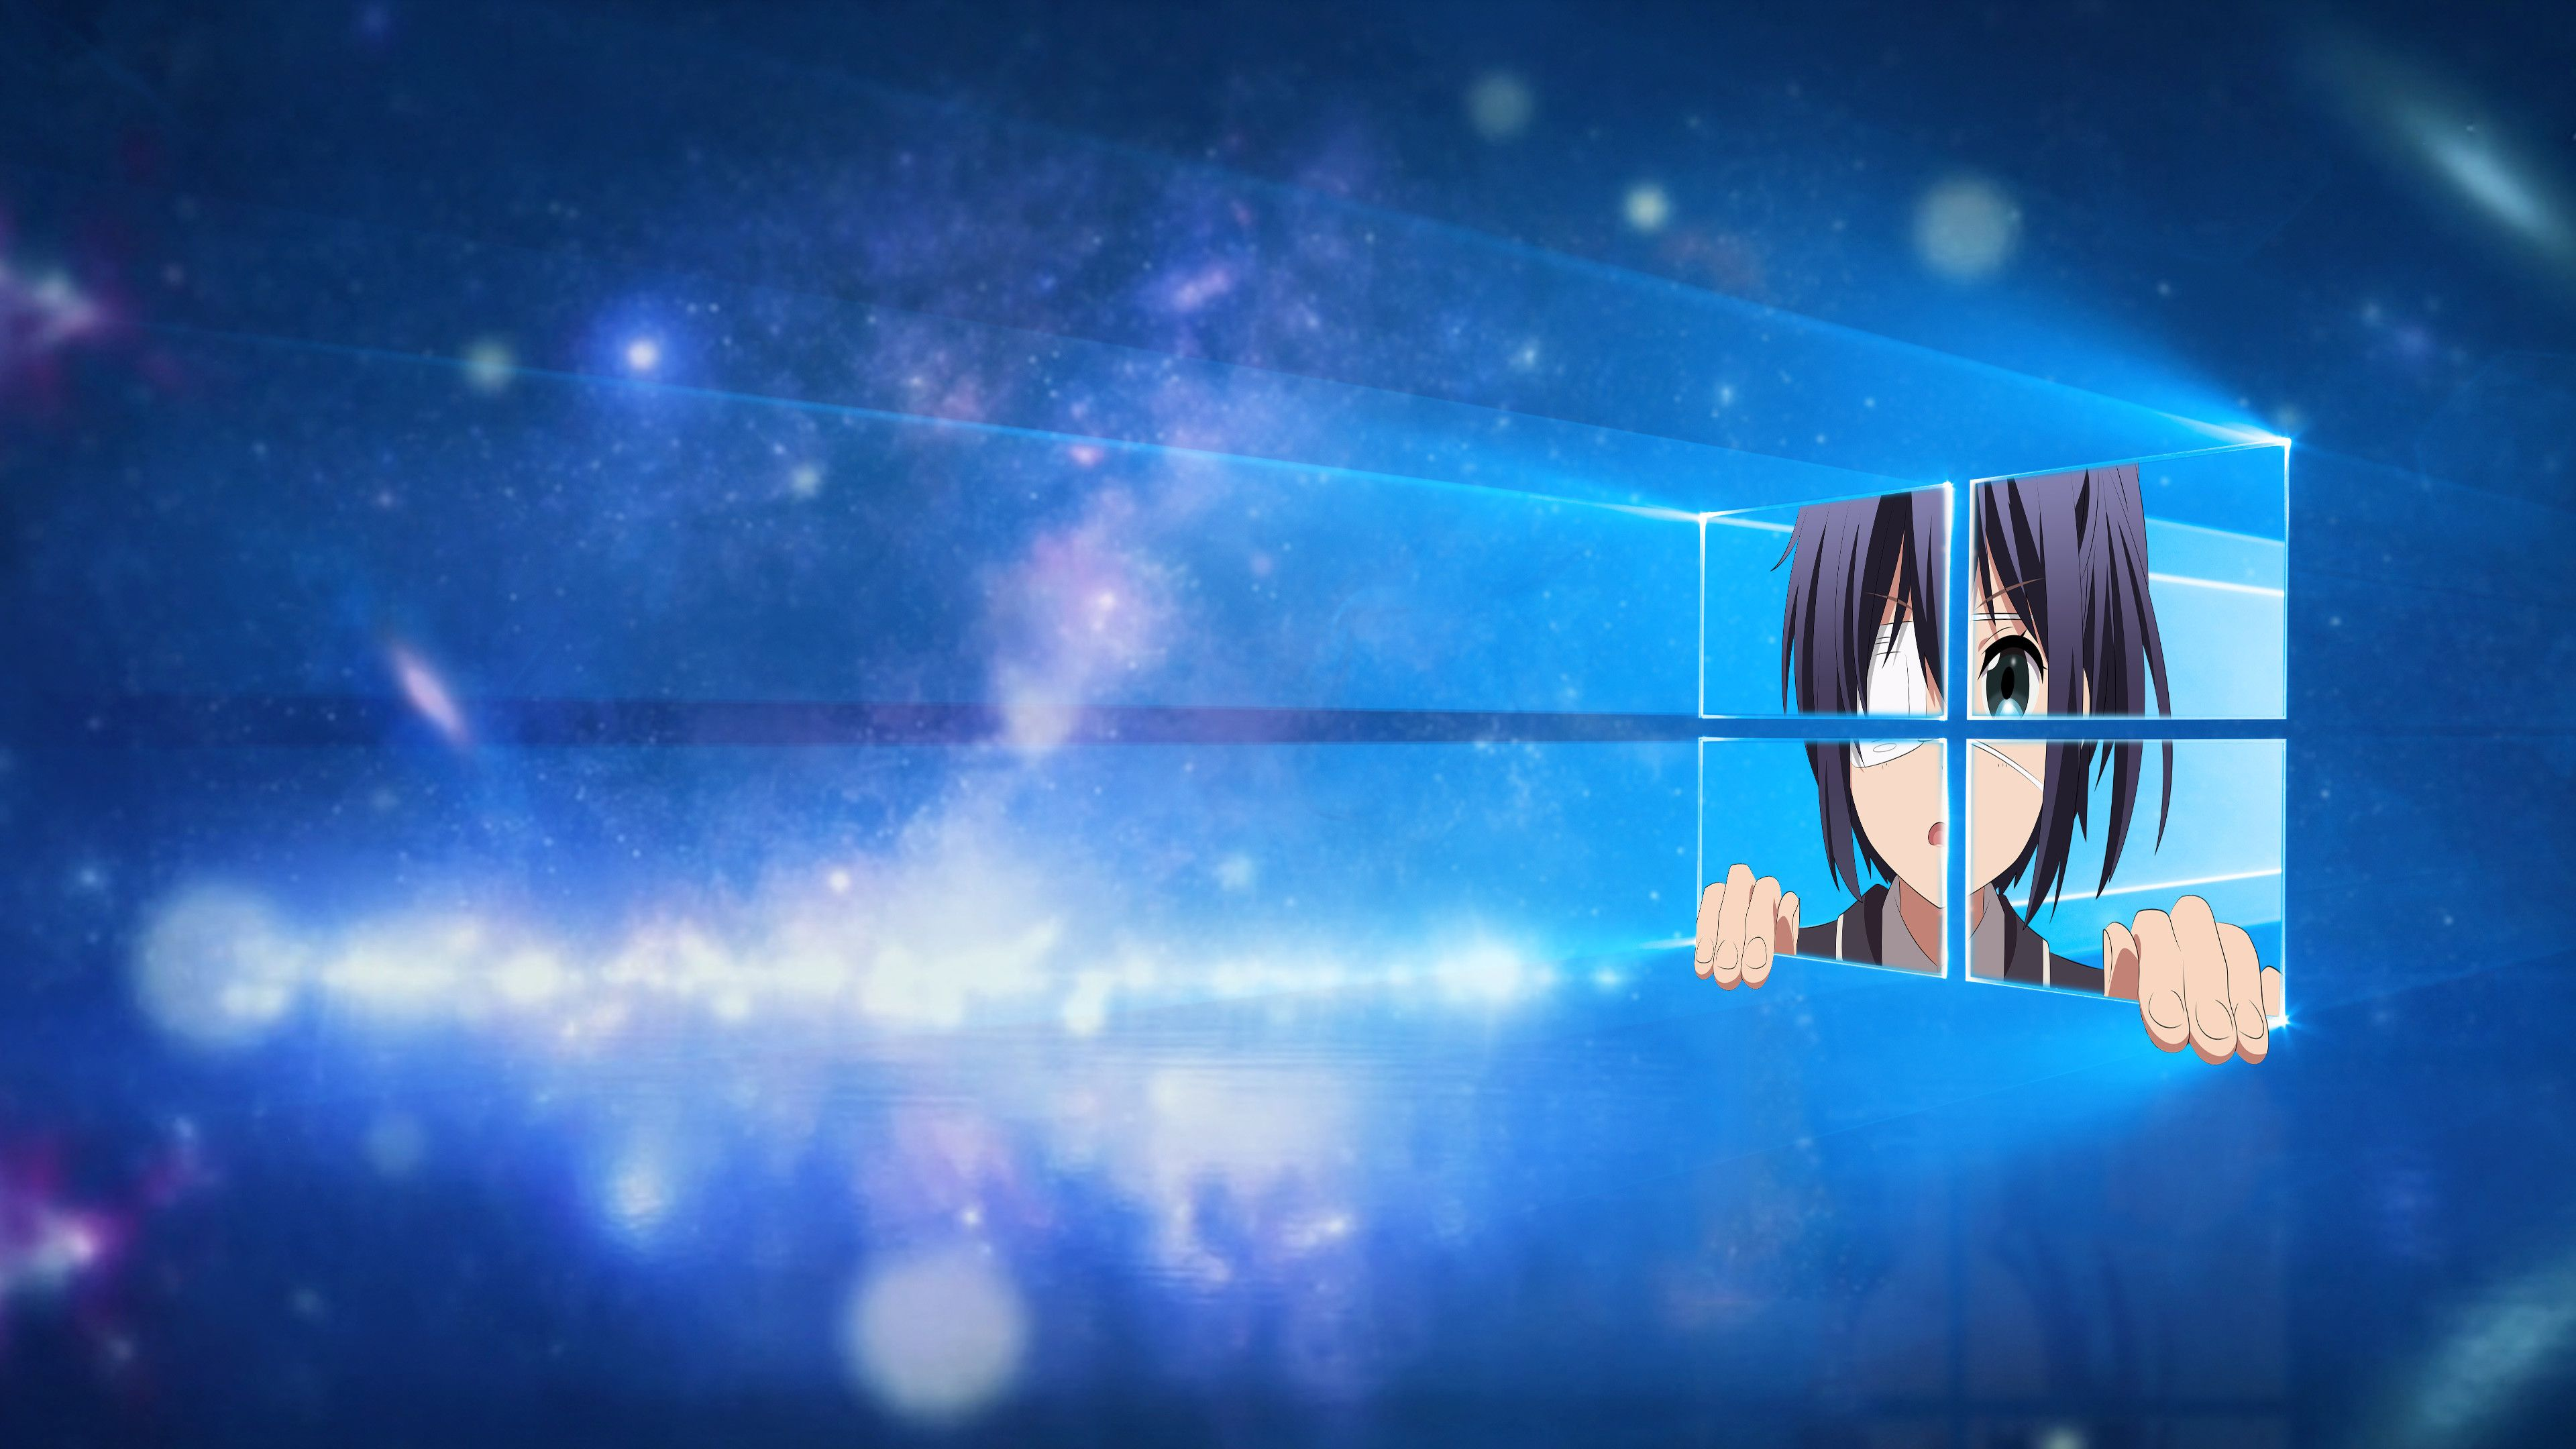 Animated Wallpaper Windows 10 (56+ images) Anime